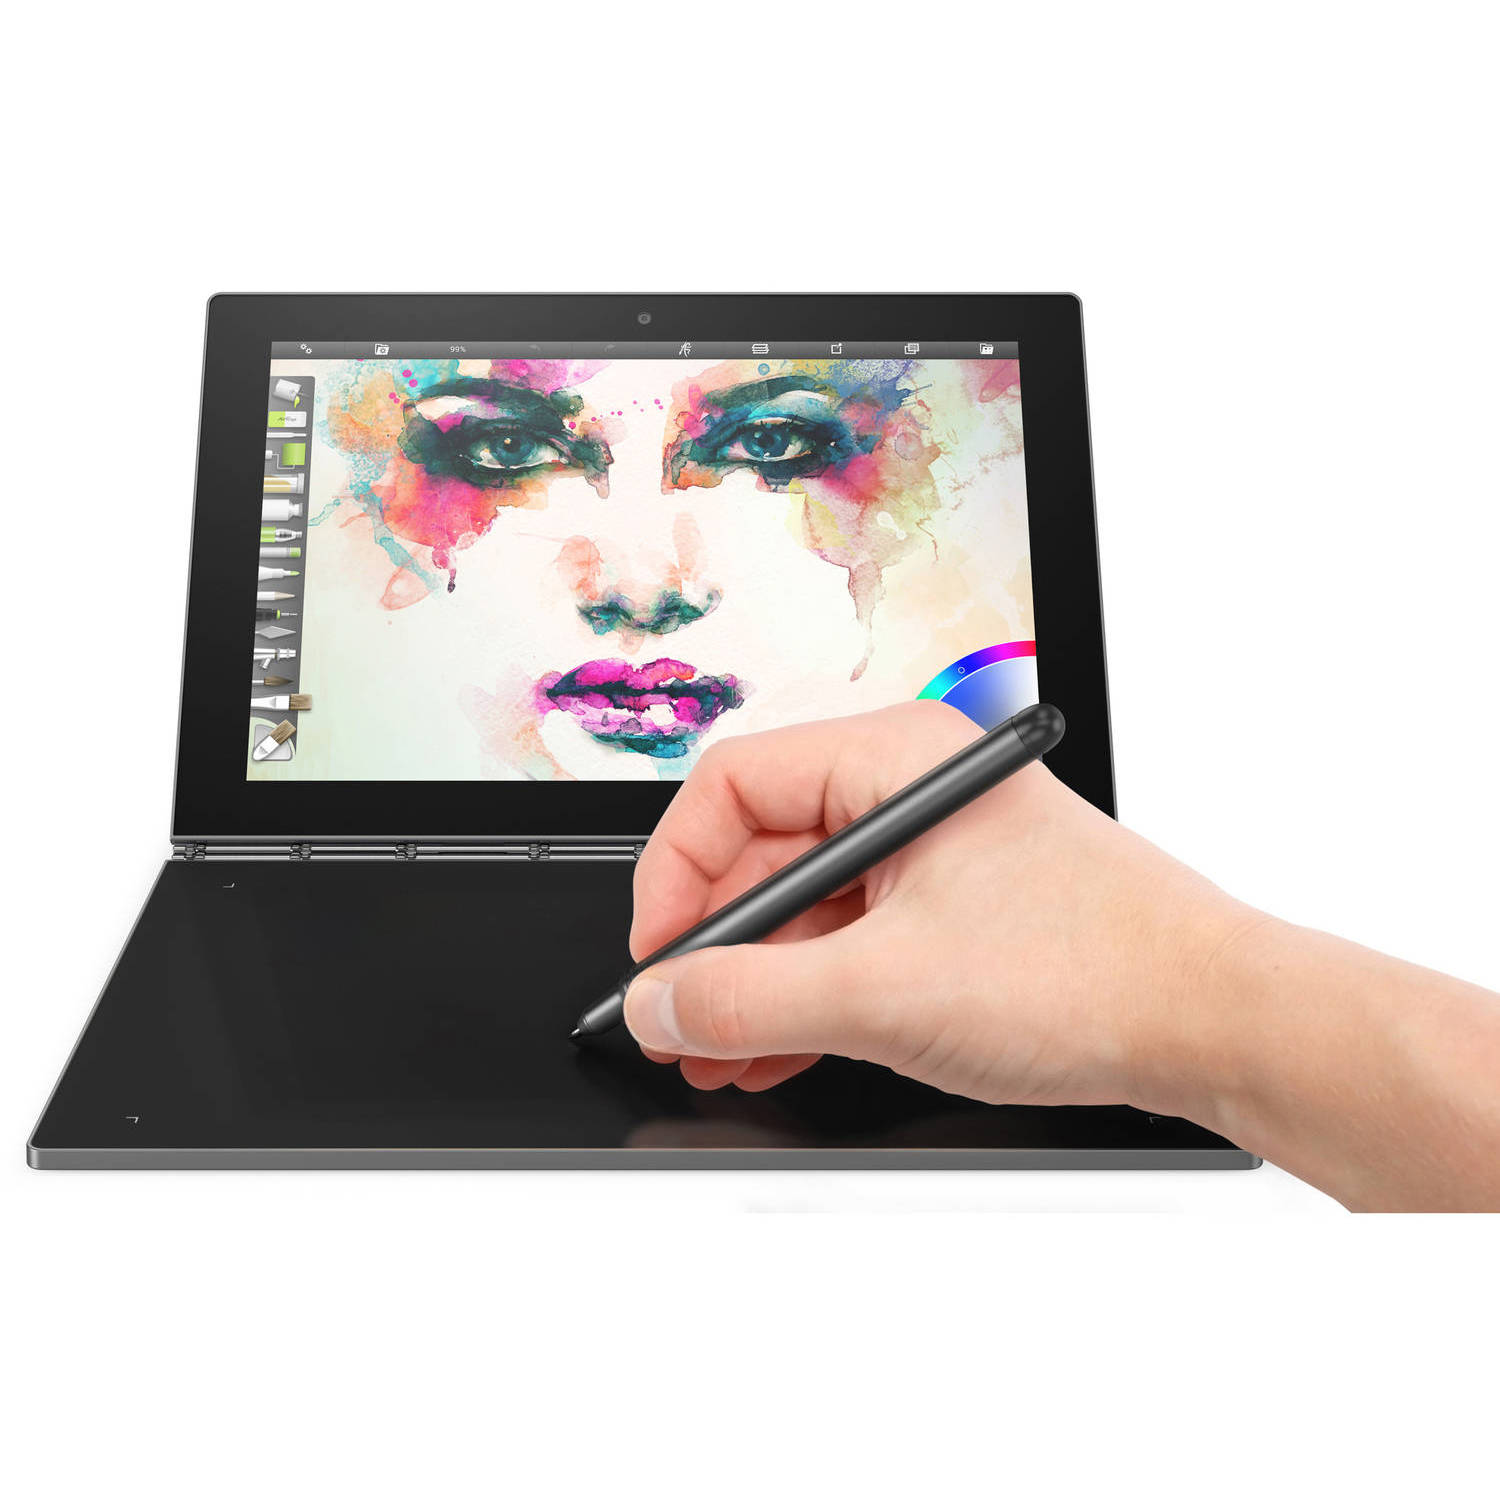 "Lenovo Yoga Book with WiFi 10.1"" Touchscreen Tablet PC Featuring Android 6.0.1 (Marshmallow) Operating... by Lenovo"